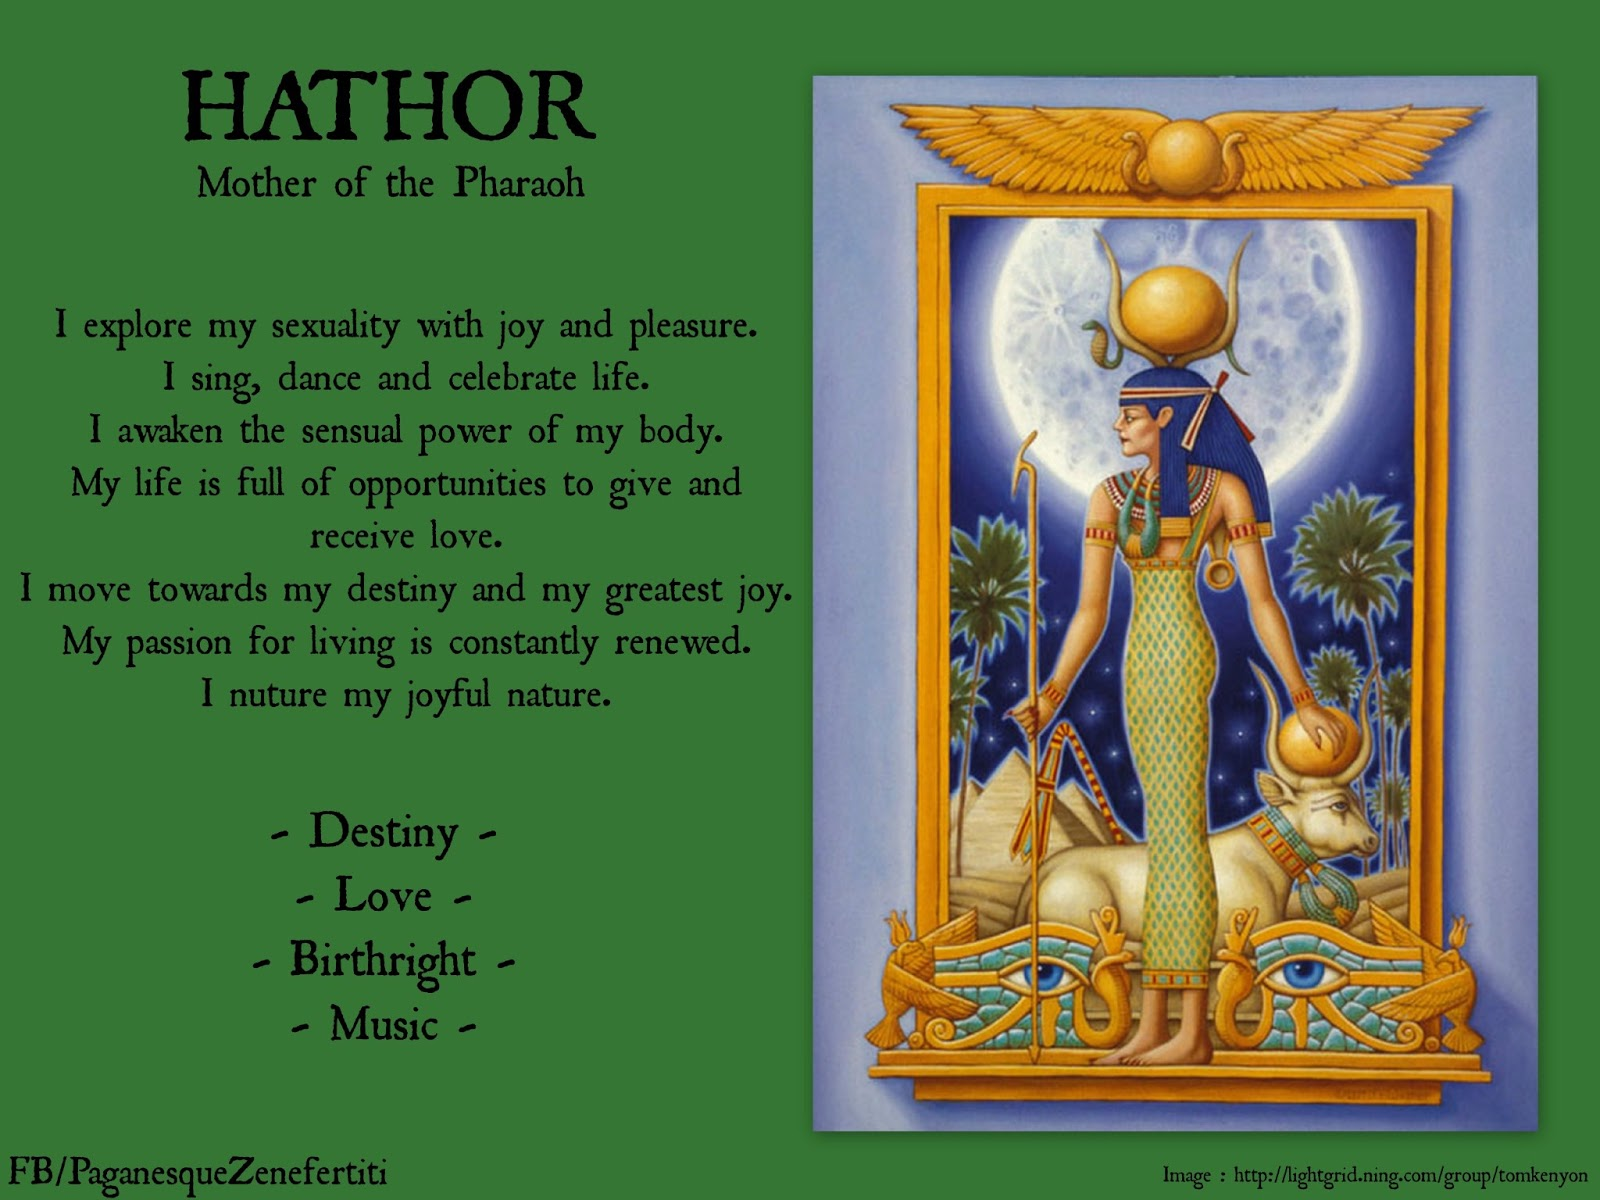 Paganesque june 2013 hathor mother of the pharoah biocorpaavc Gallery